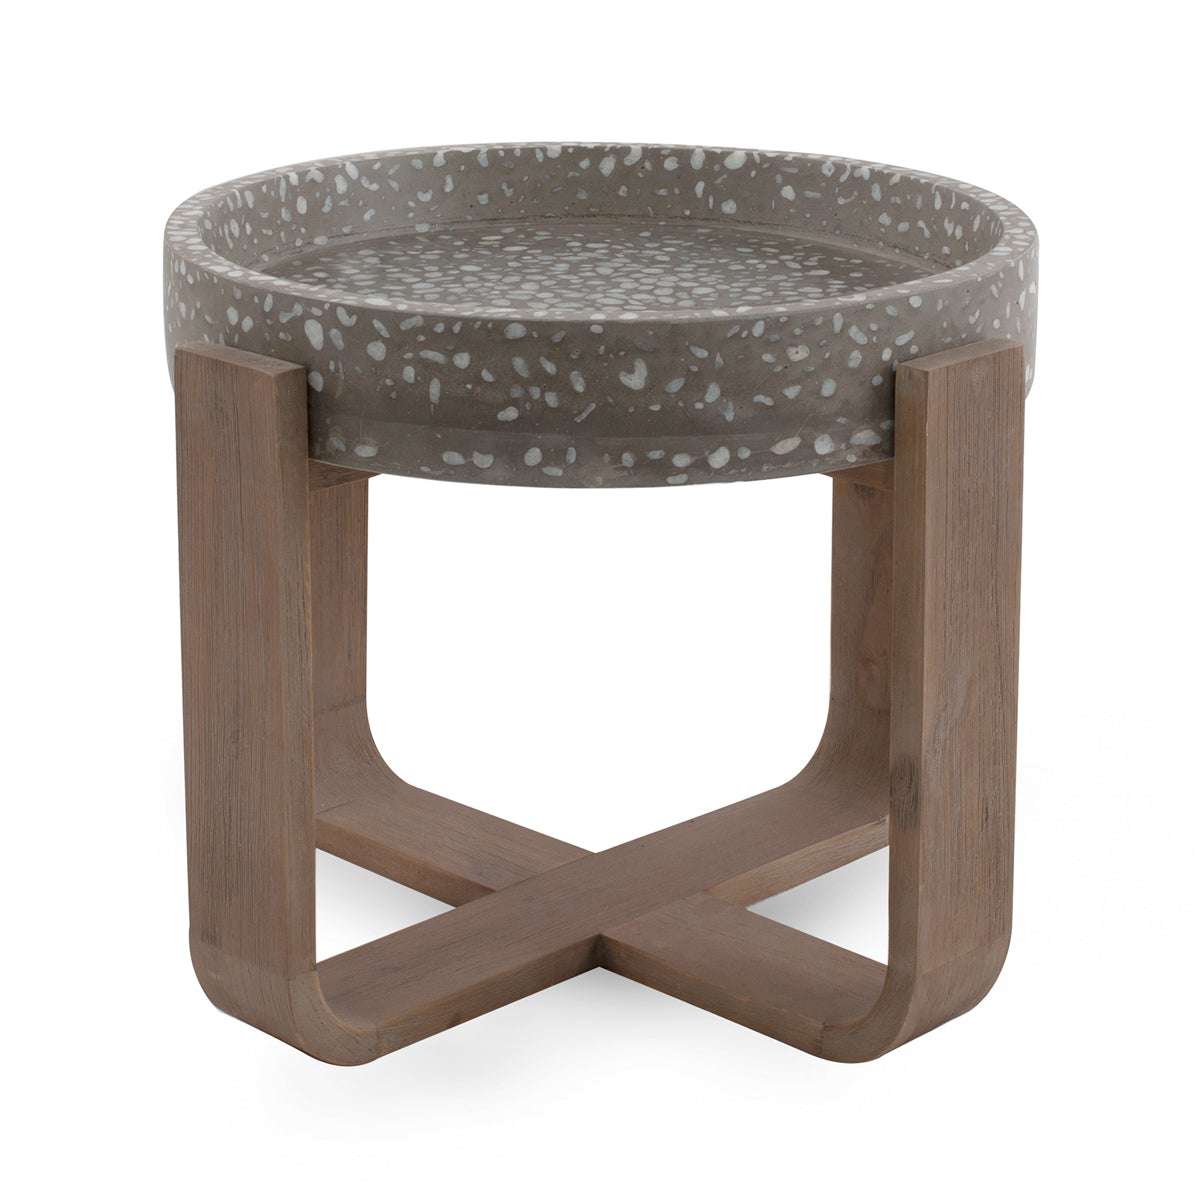 Barcelona 2 Side Table - ModShop1.com